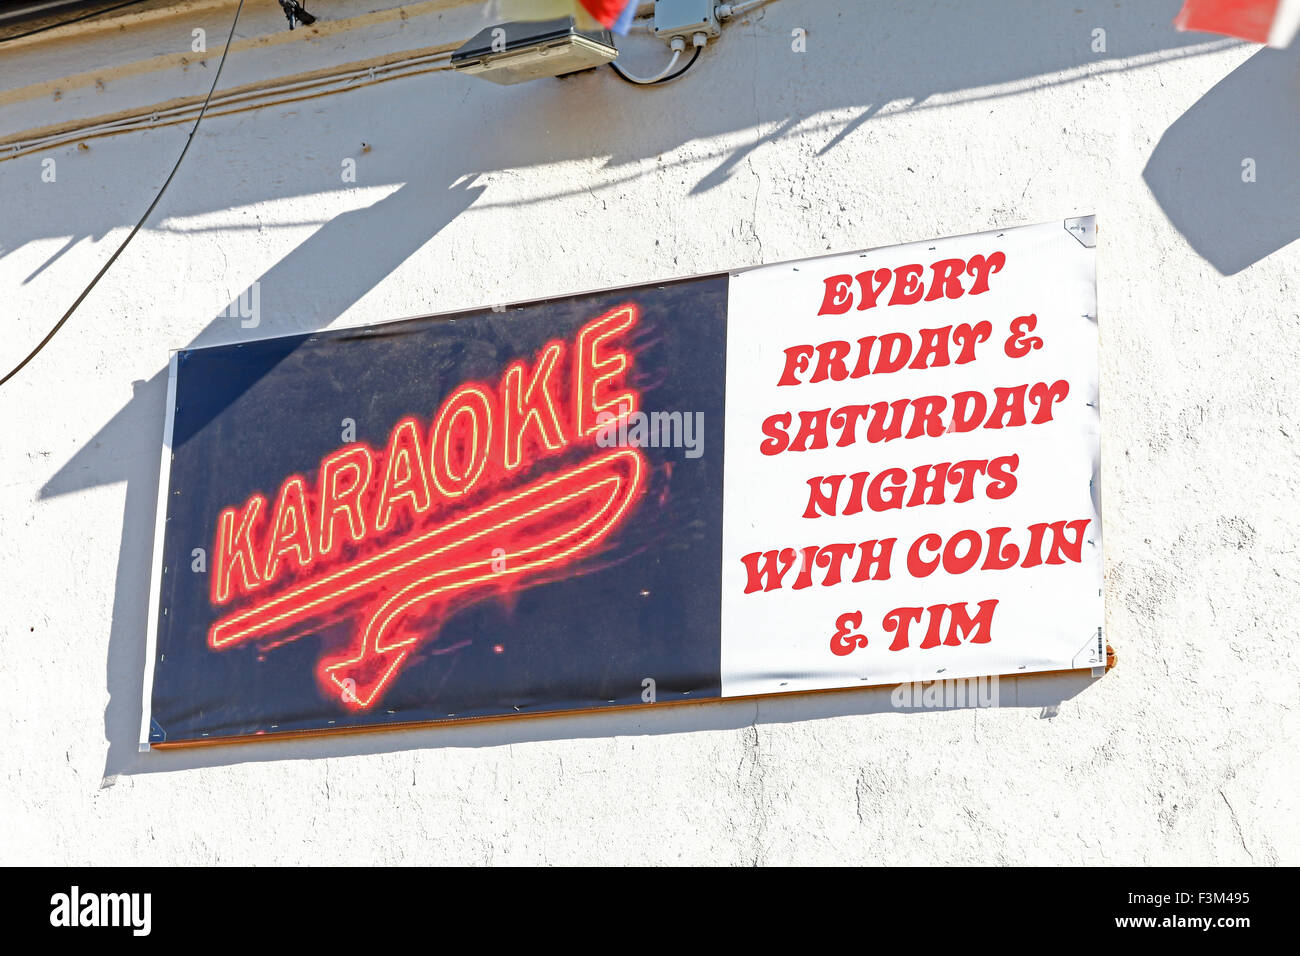 A sign on a pub or public house saying karaoke every Friday and Saturday night - Stock Image